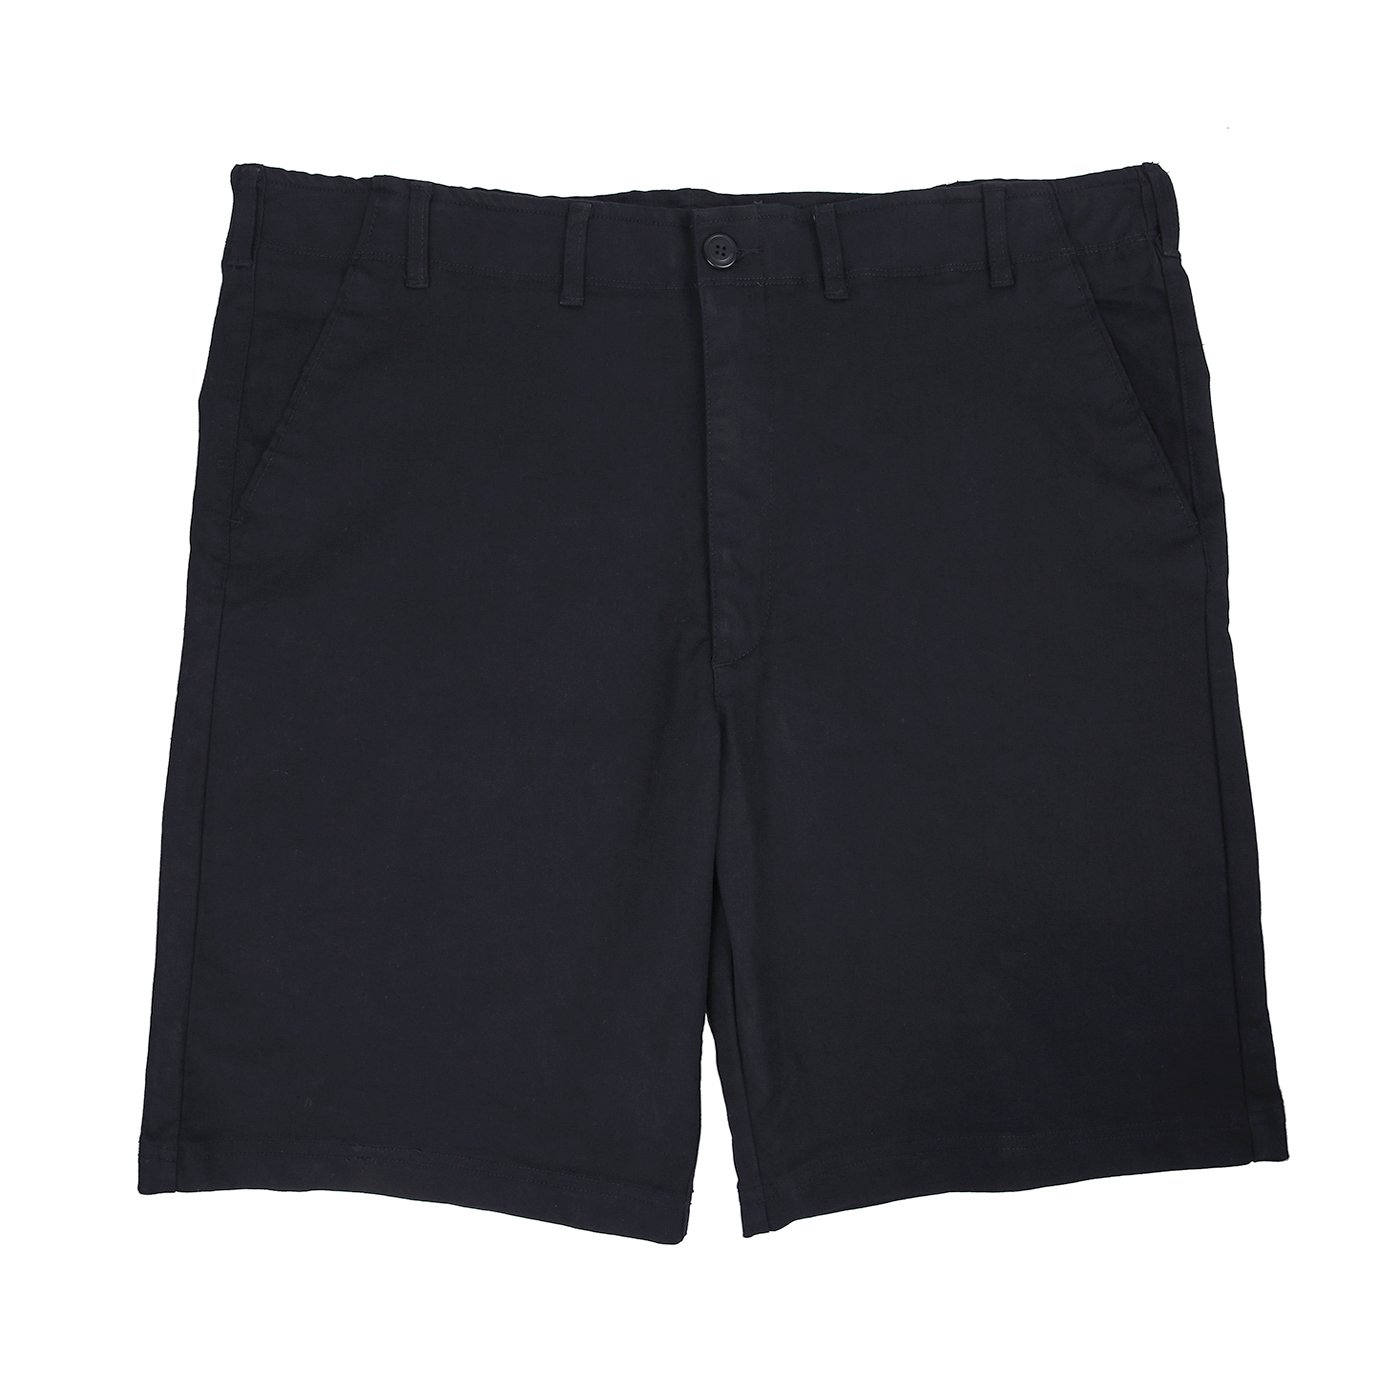 HDE Mens Big and Tall Shorts Comfort Waist Classic Fit Twill Cotton Blend Chino (Black, 46)